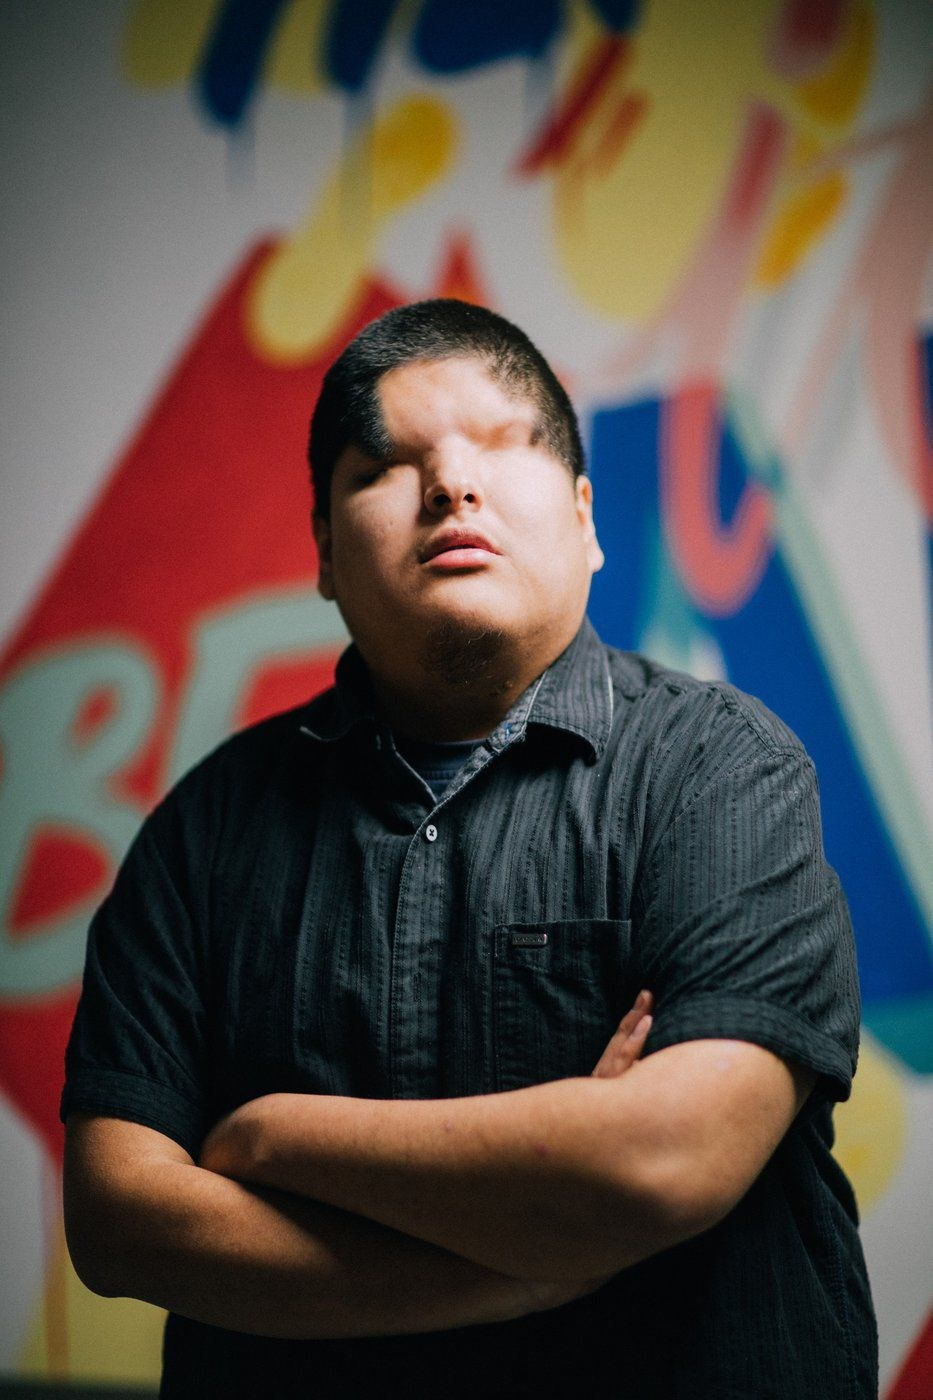 Indigenous music producer and recording artist Matthew Monias, also known as Mattmac.